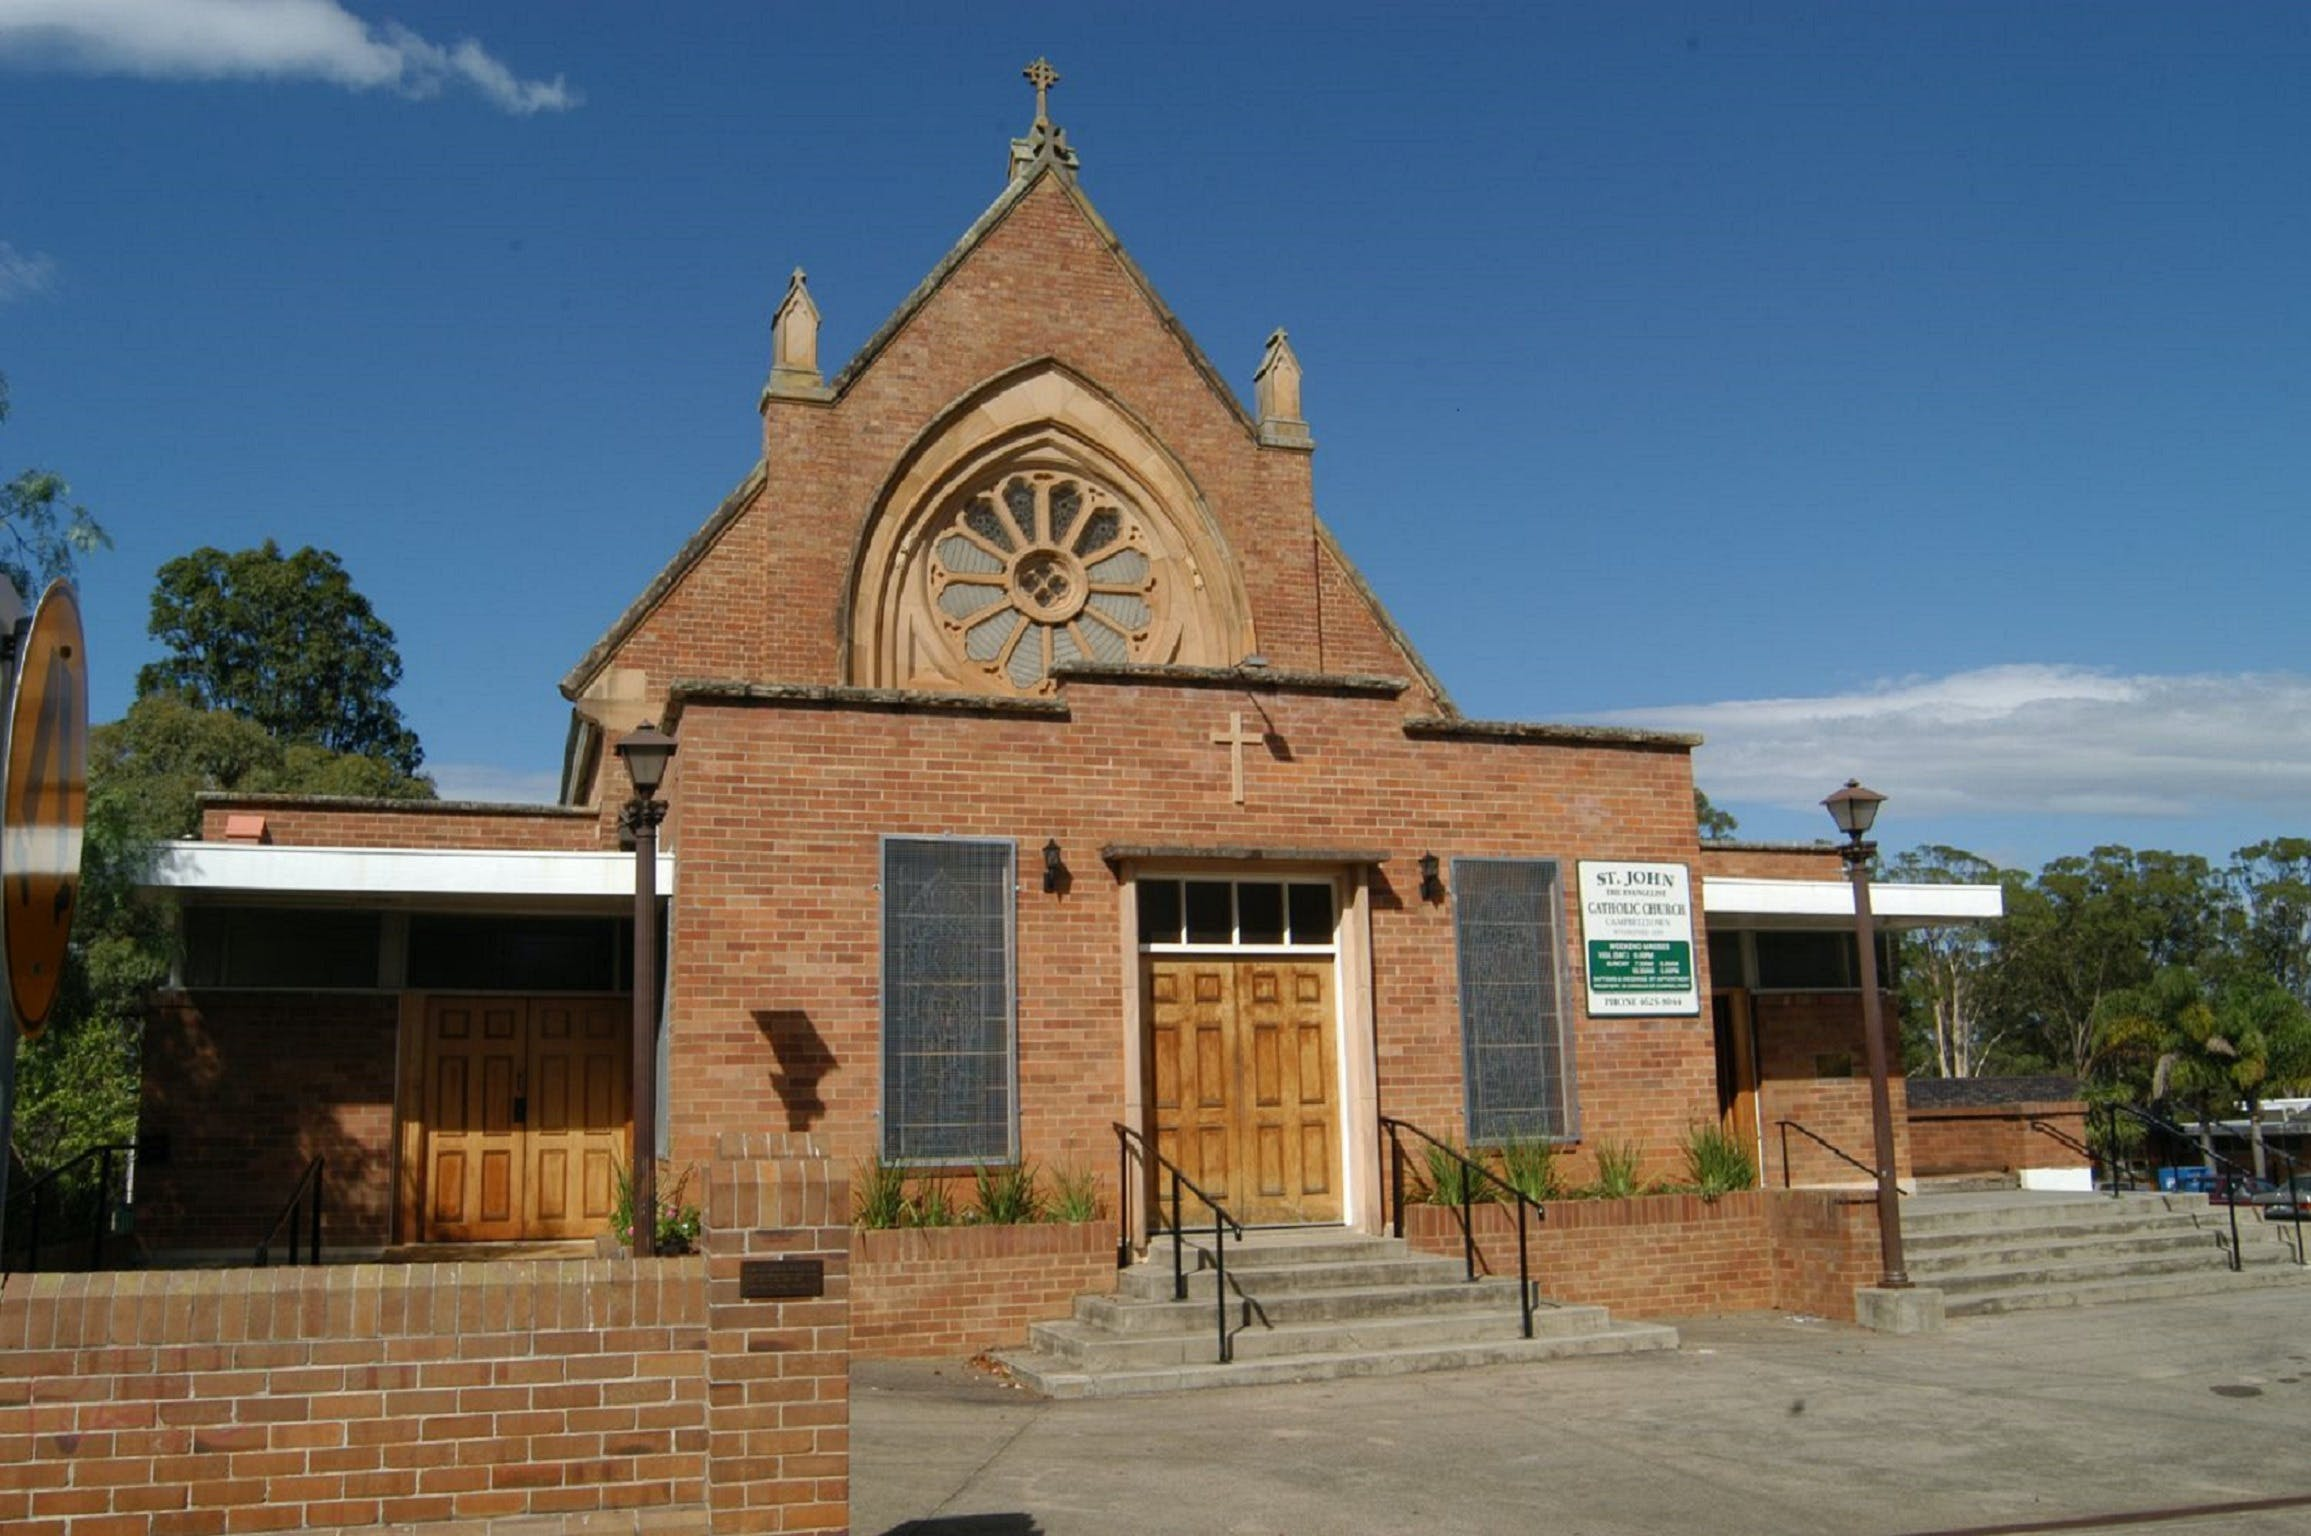 St John's Catholic Church - Find Attractions